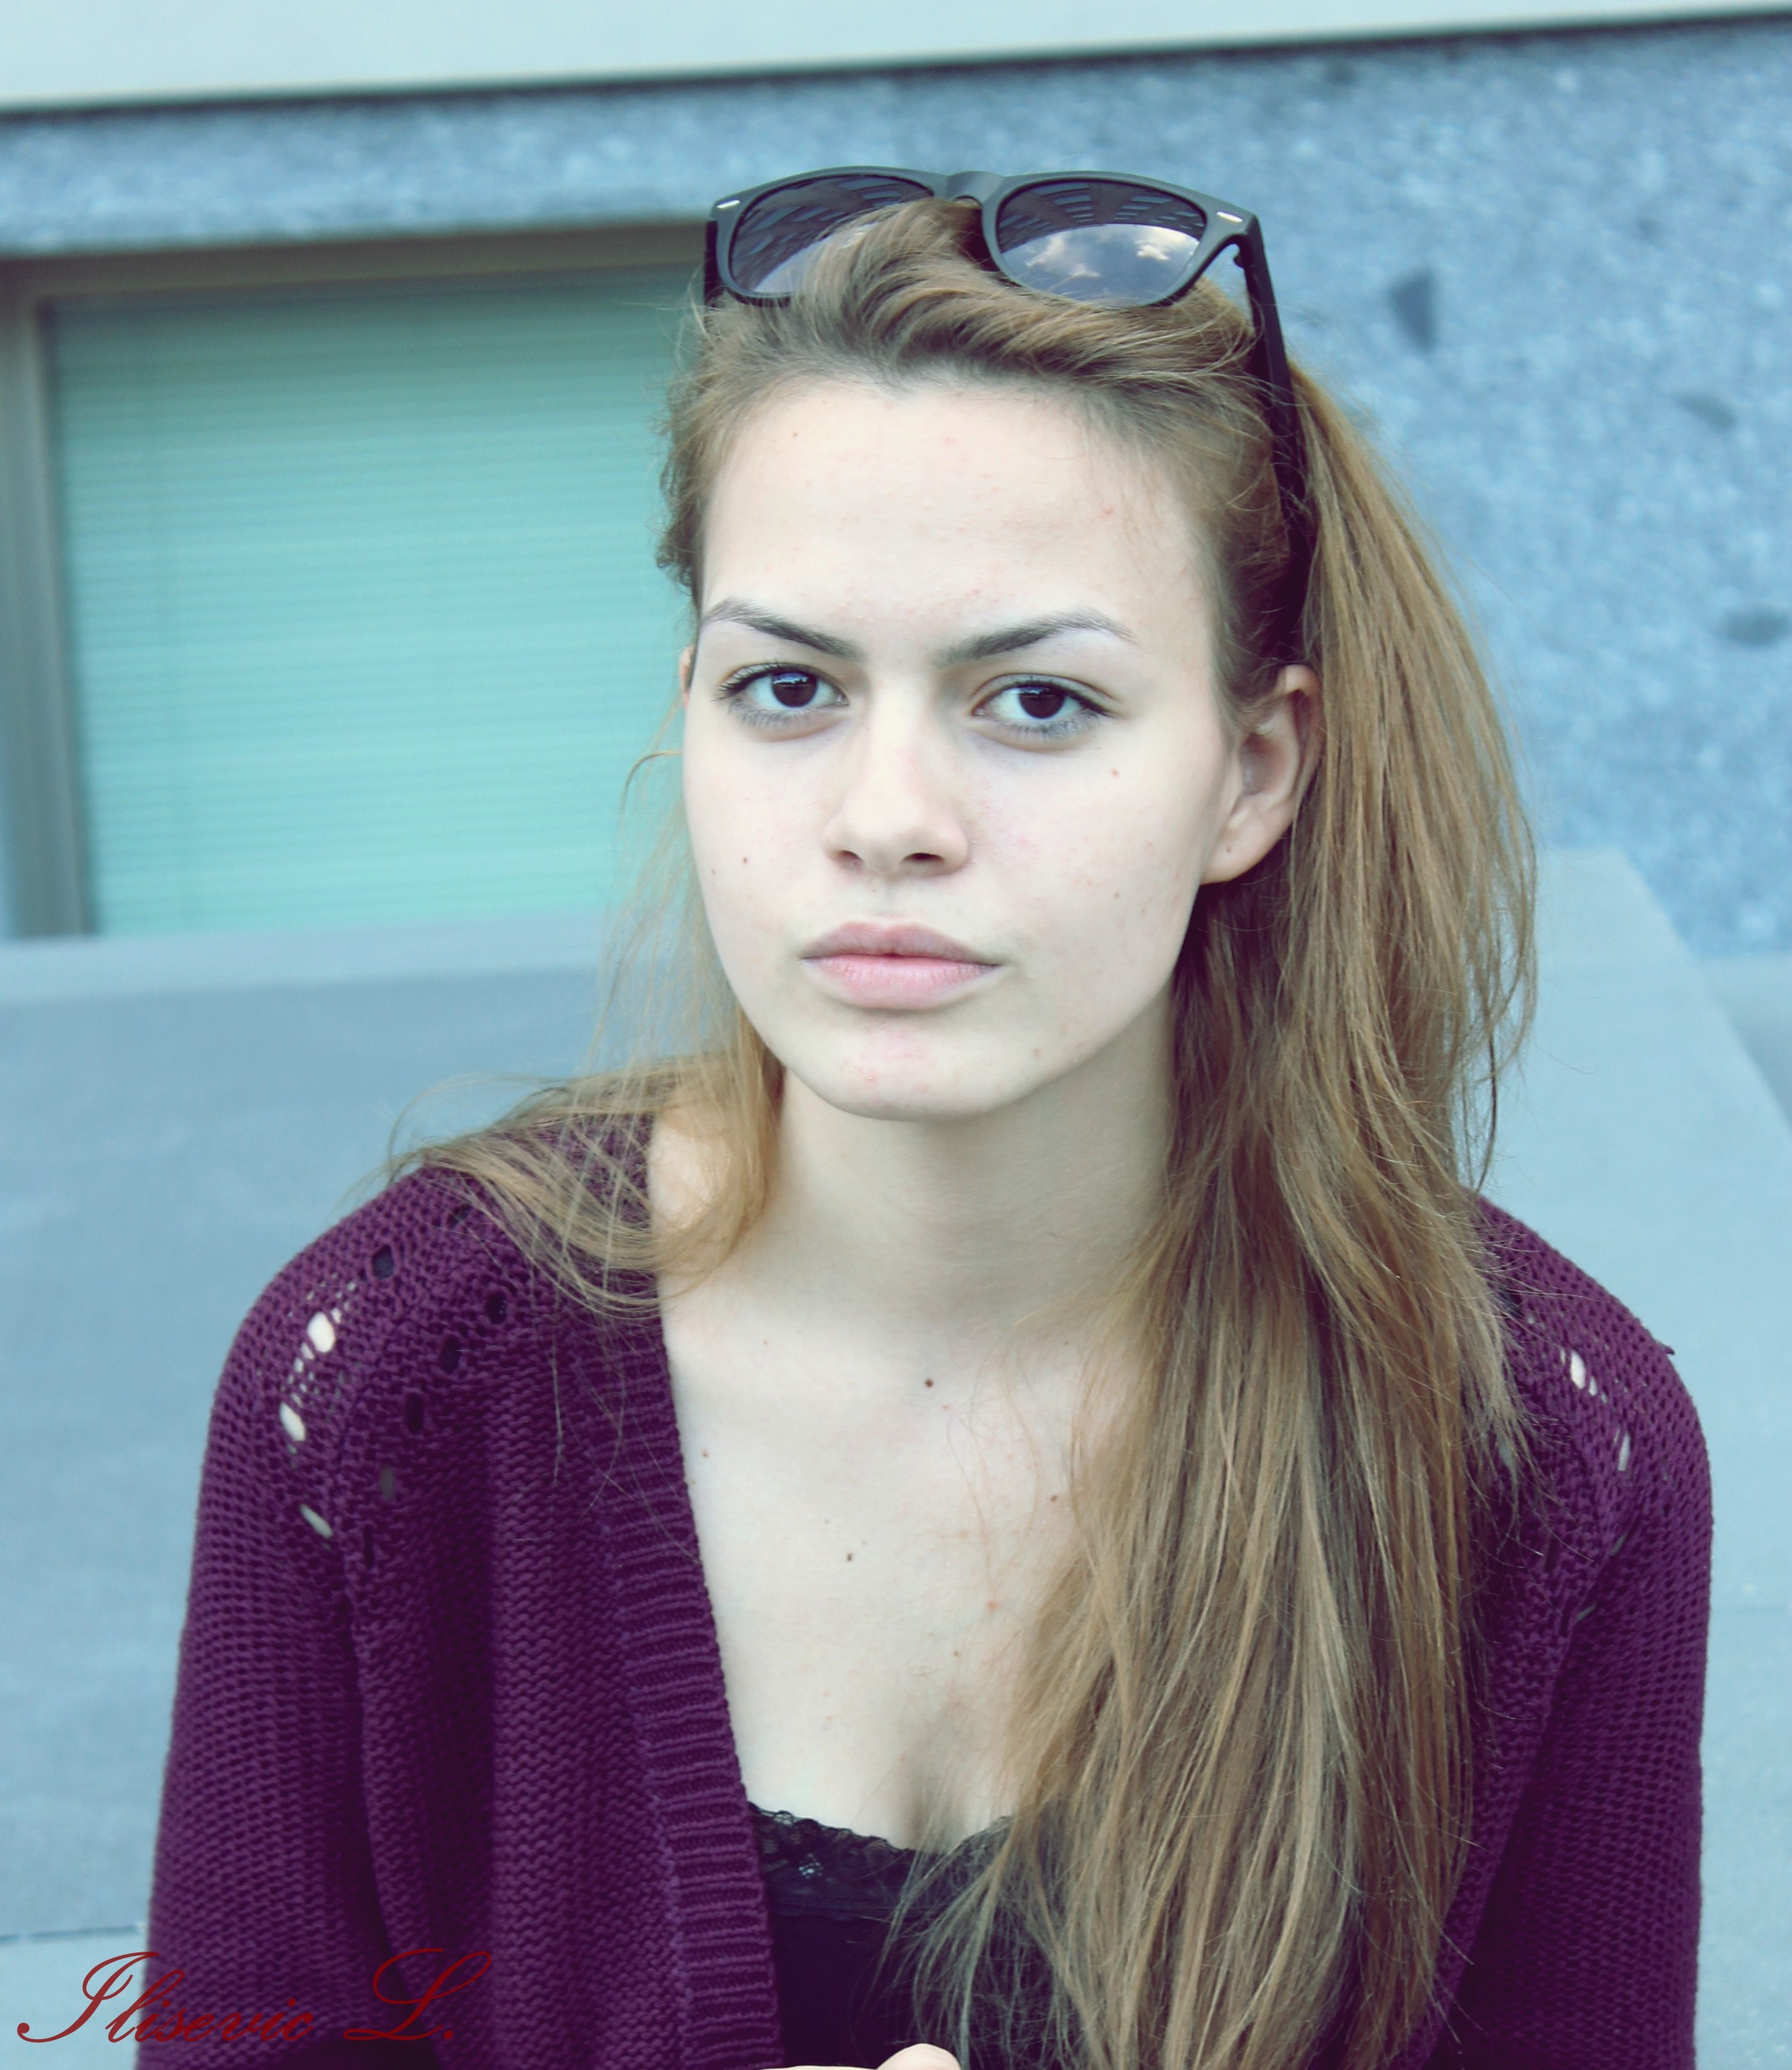 portrait, looking at camera, person, young adult, headshot, front view, young women, lifestyles, long hair, close-up, leisure activity, smiling, head and shoulders, casual clothing, indoors, focus on foreground